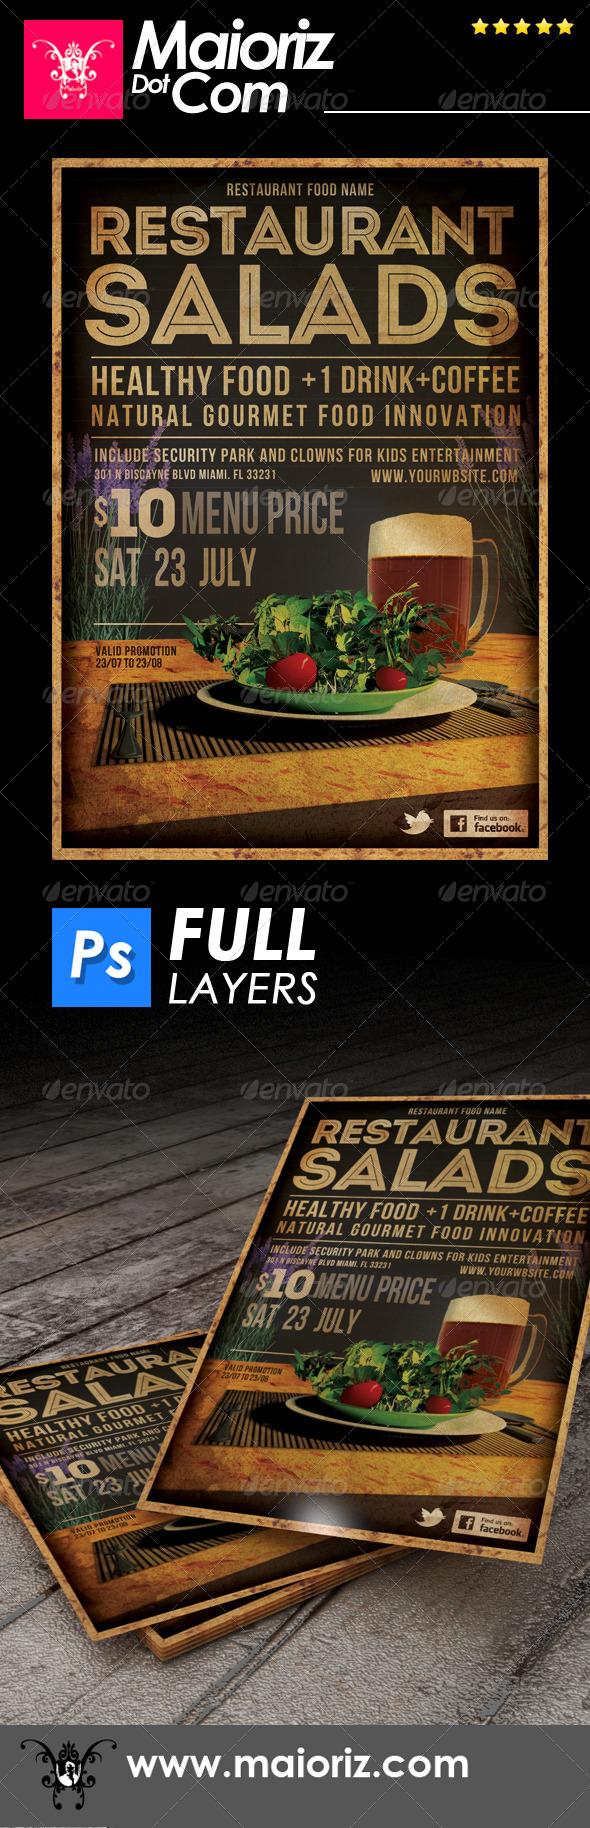 Restaurant Salads Flyer - Restaurant Flyers